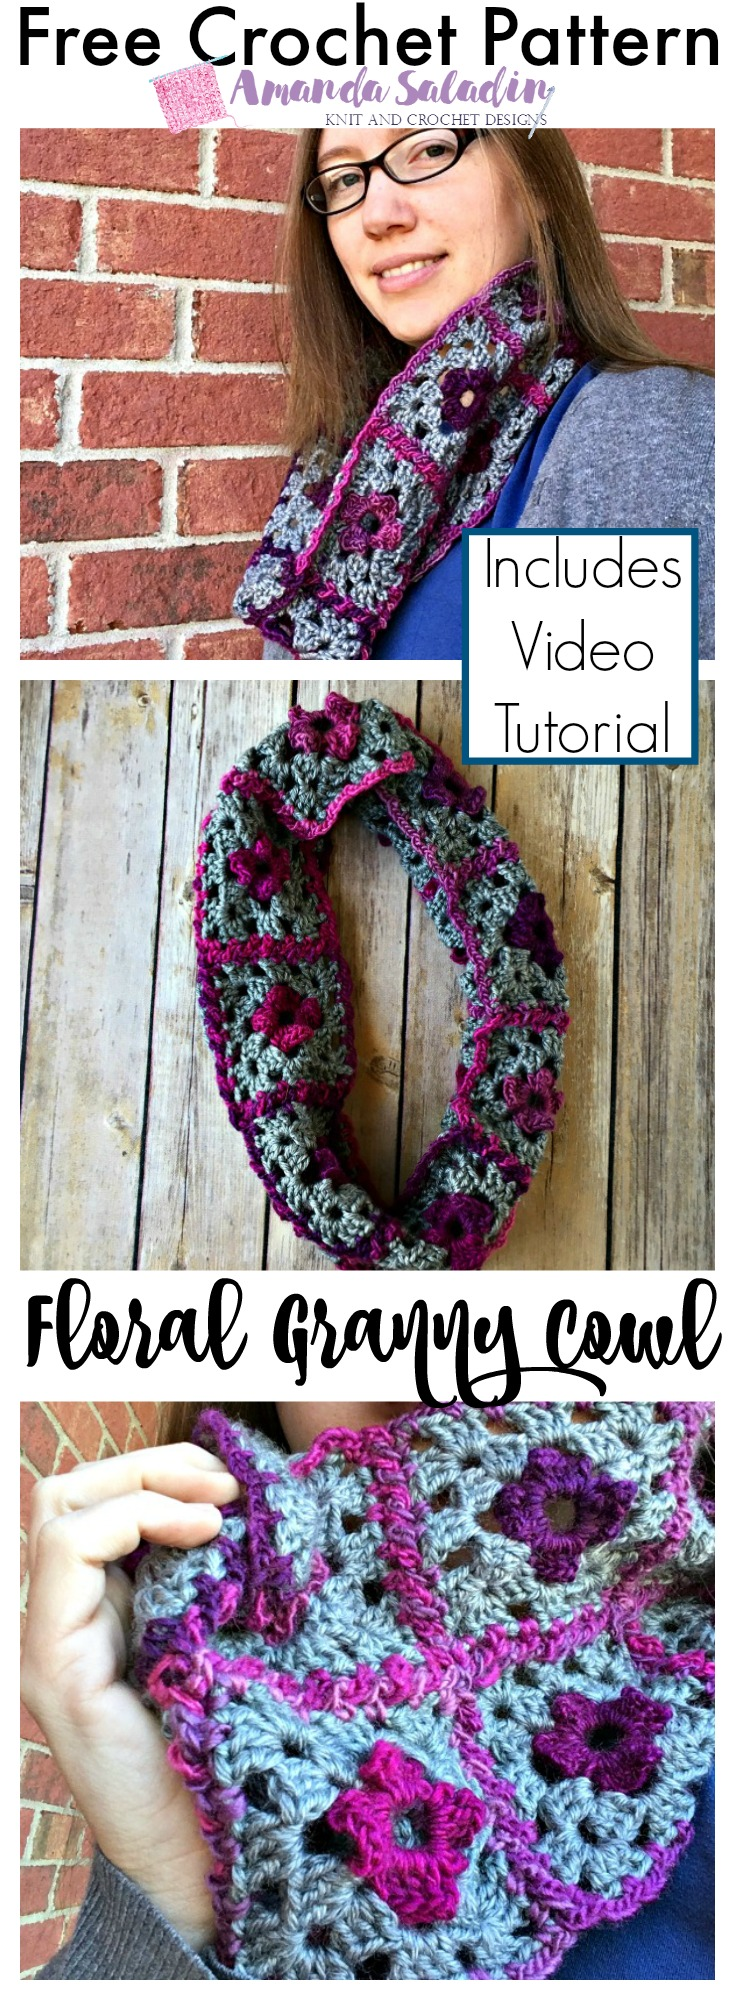 Free Crochet Pattern with Video Tutorial - So easy!